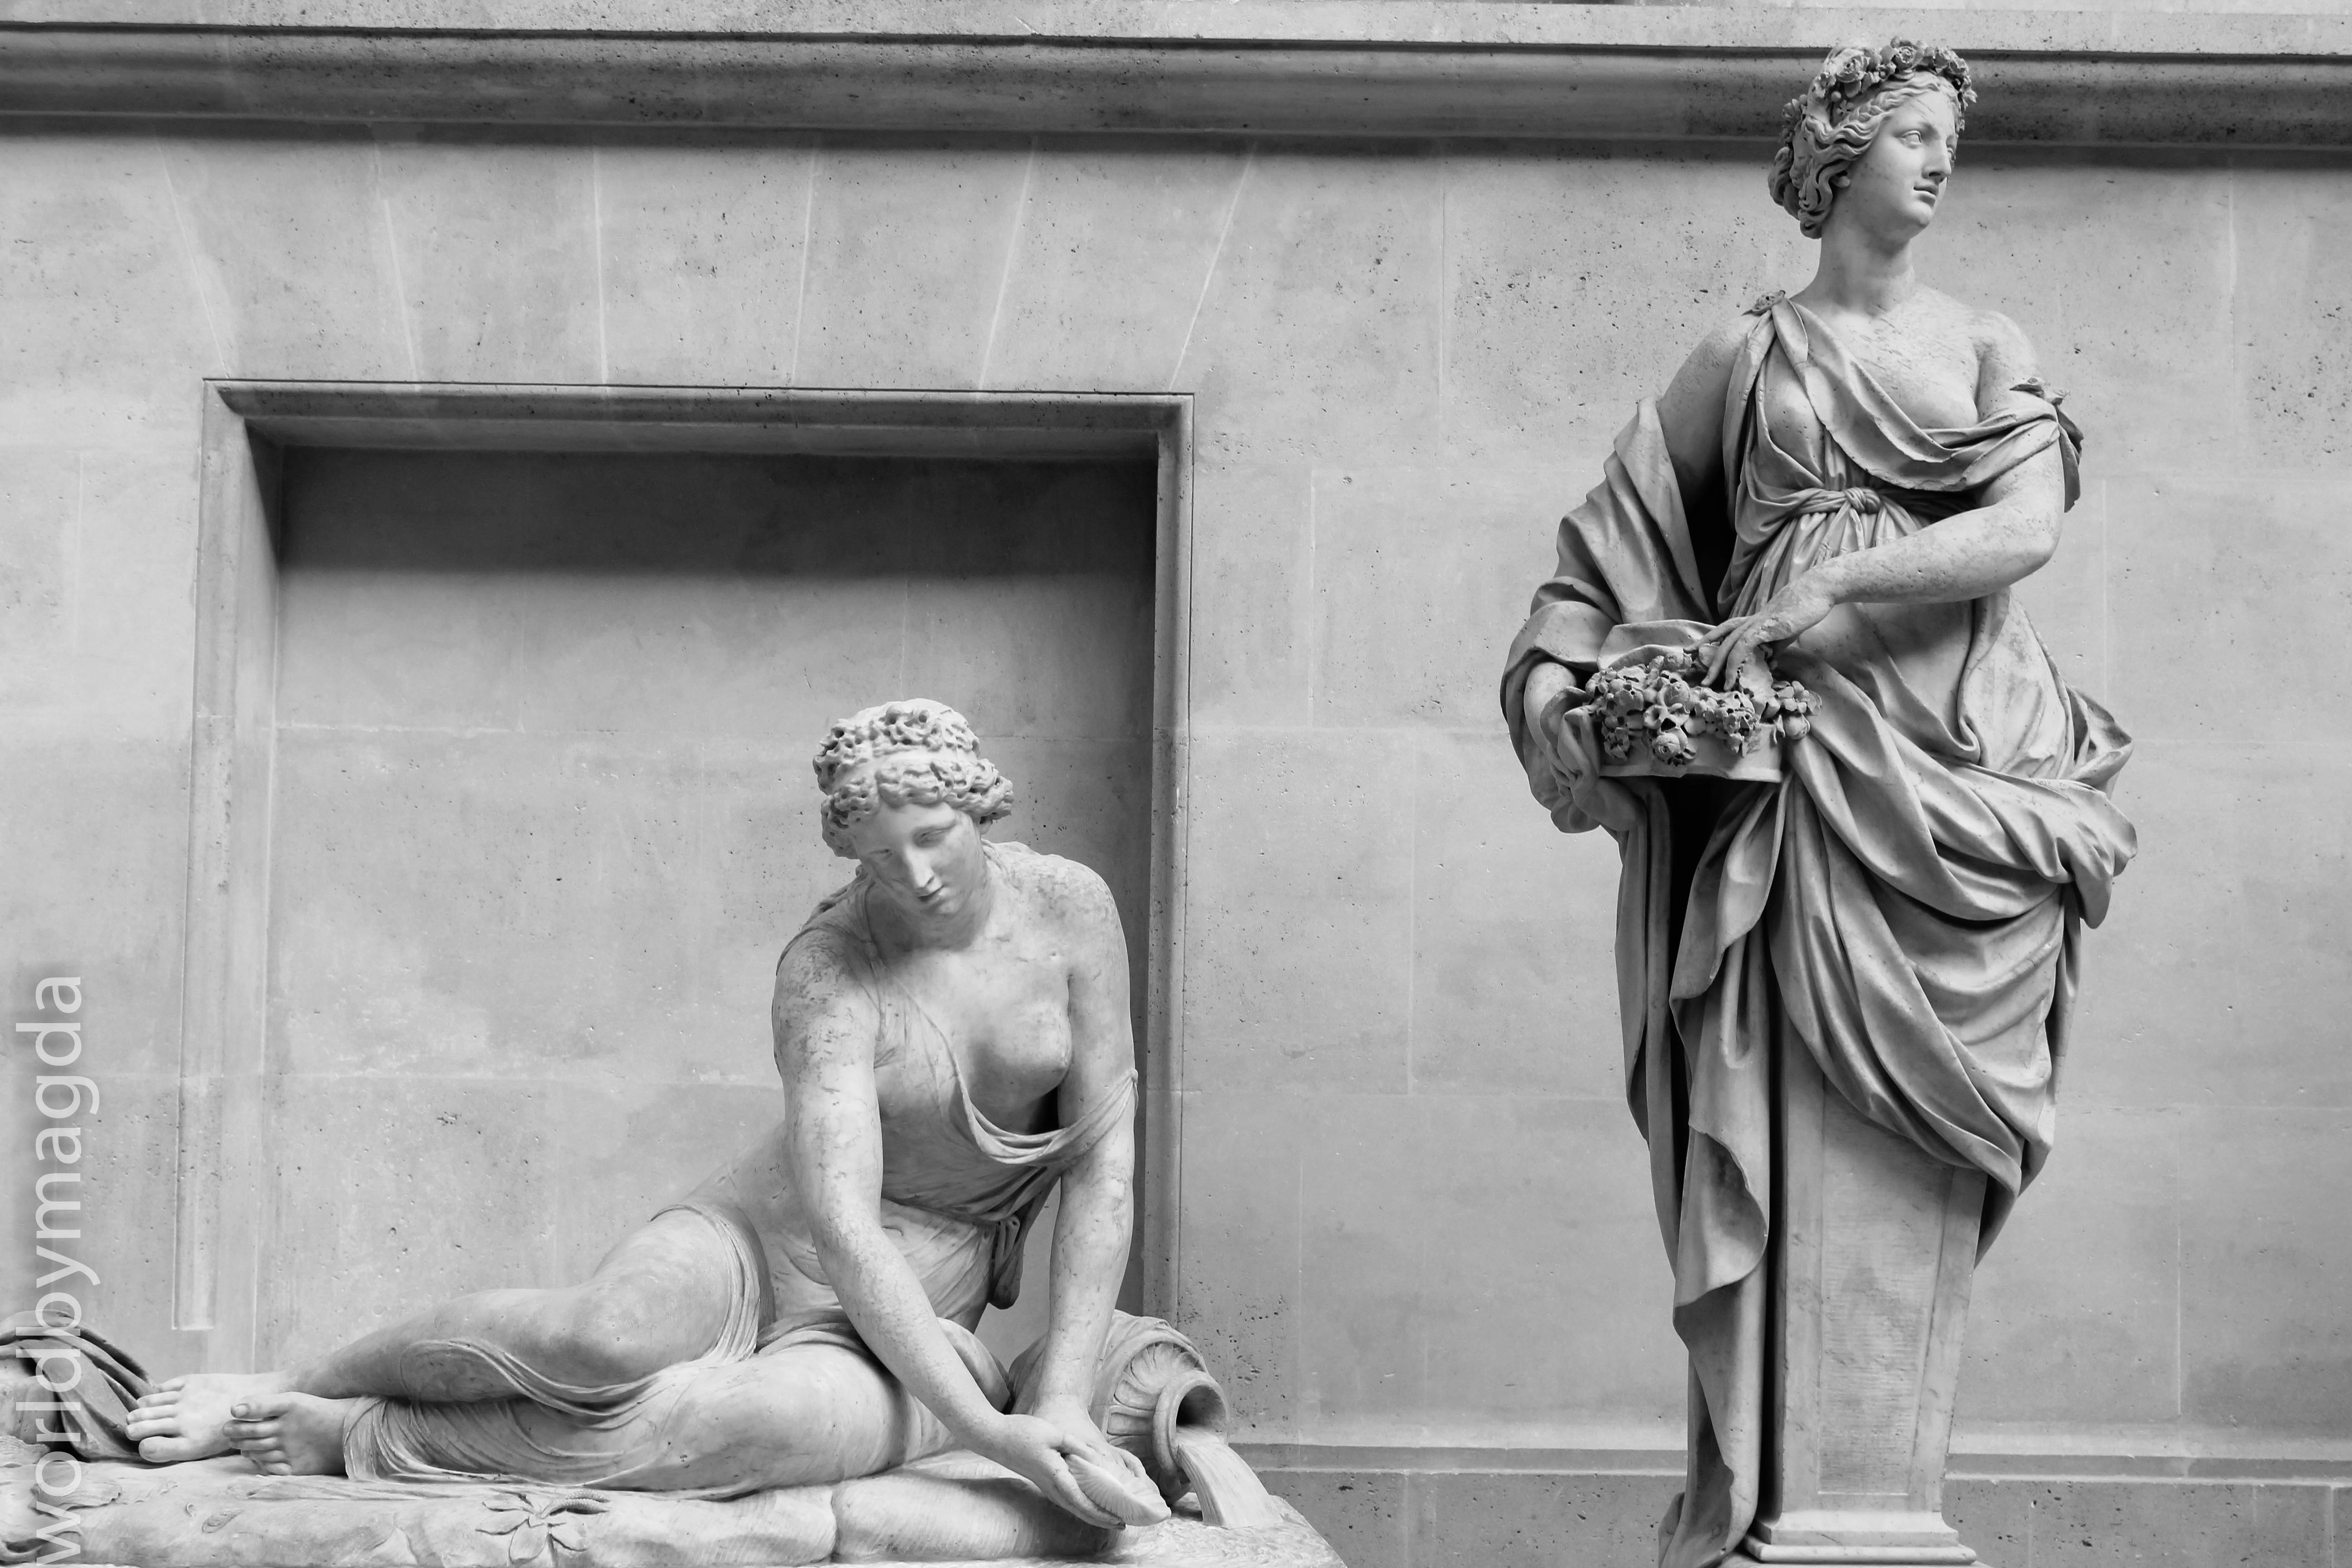 Art collection in Louvre